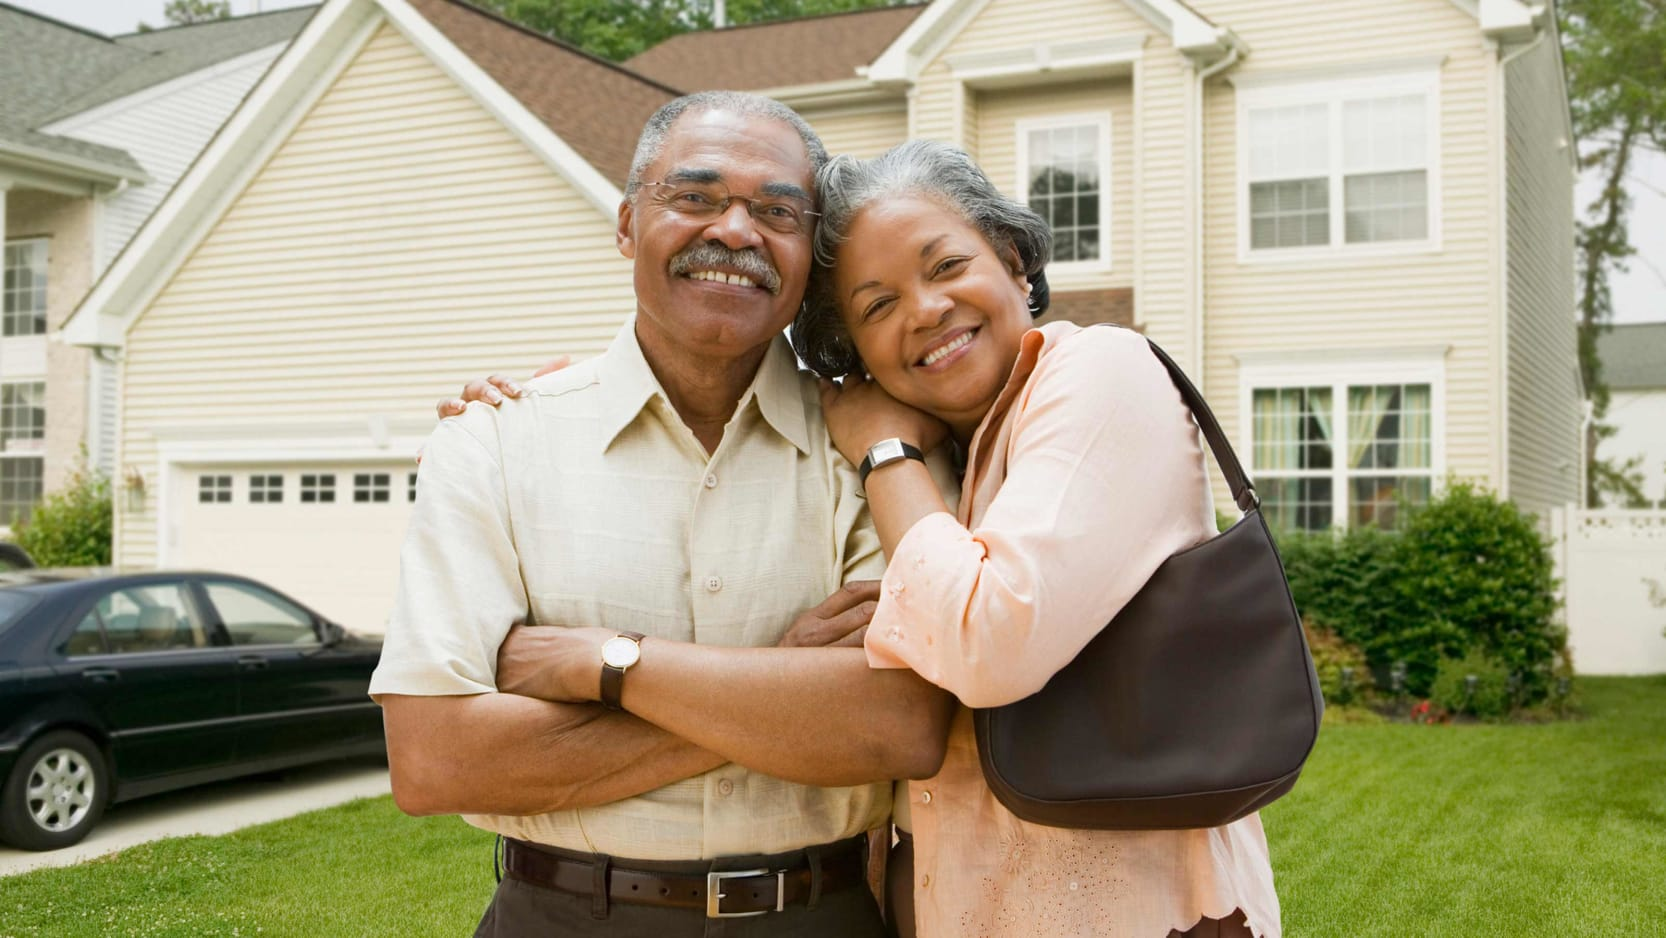 Senior couple in front of a new house.